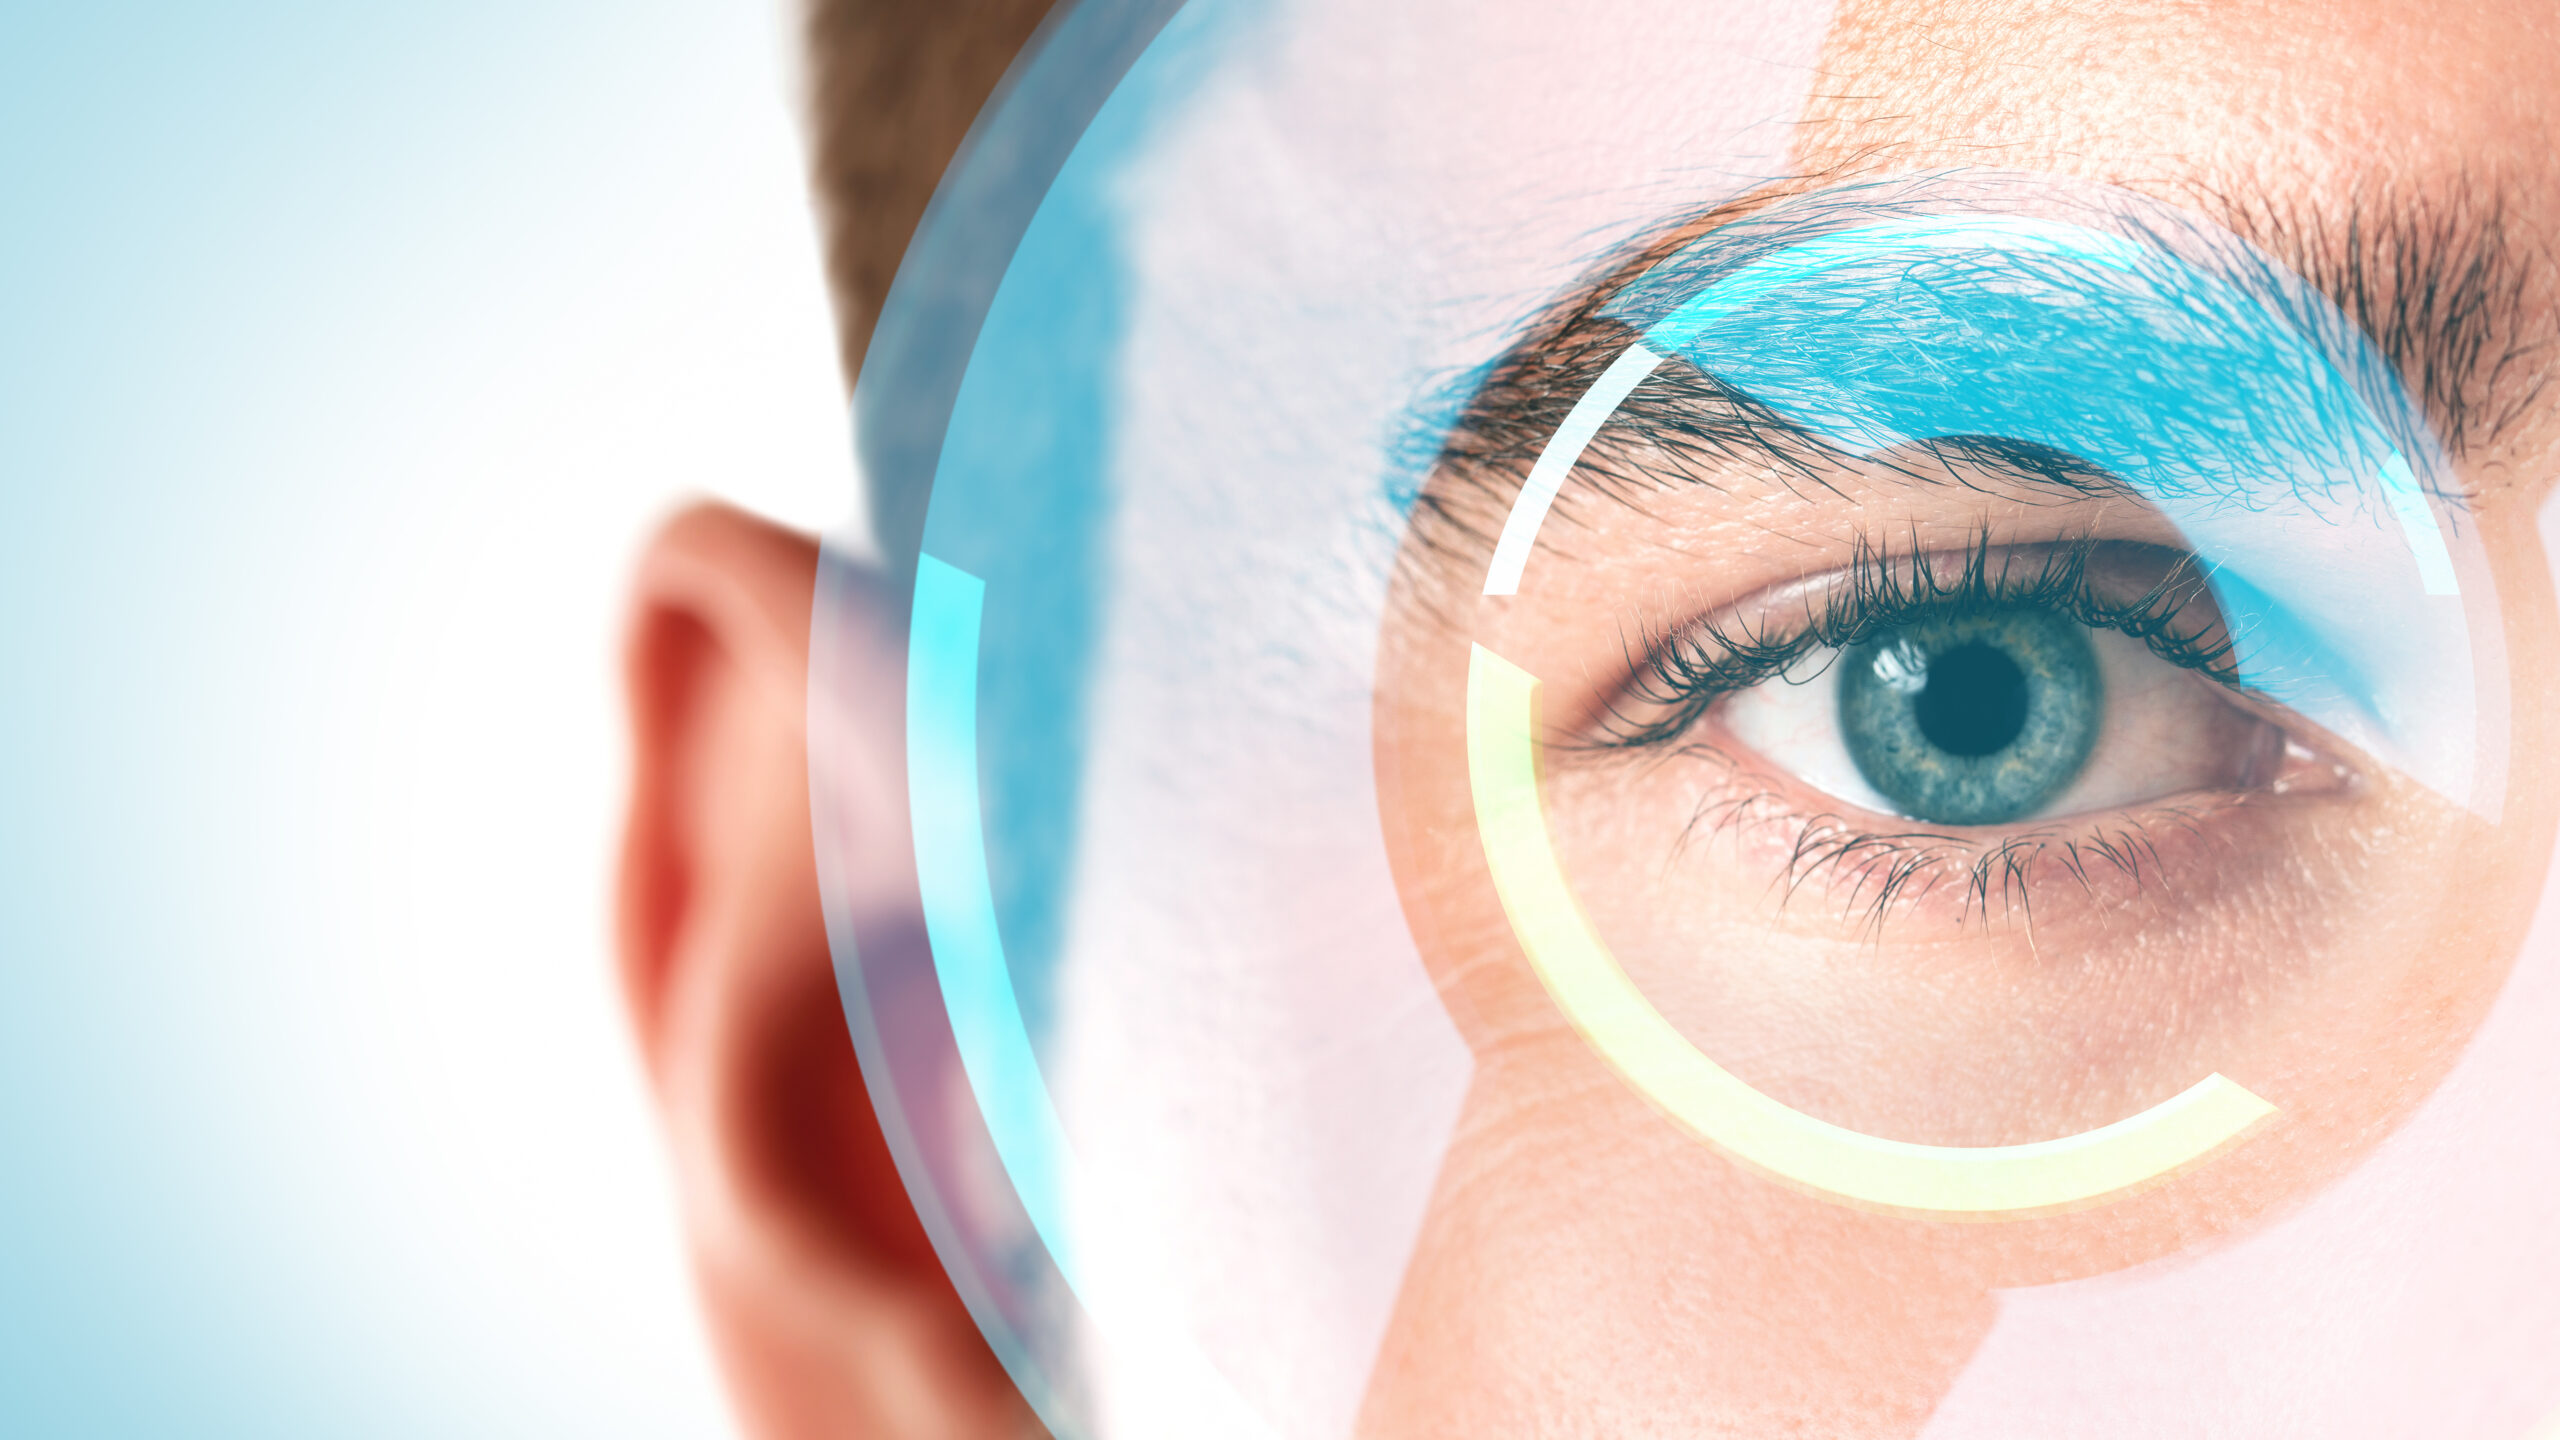 Why You Should Choose Dr. Jani for Your Laser Vision Correction